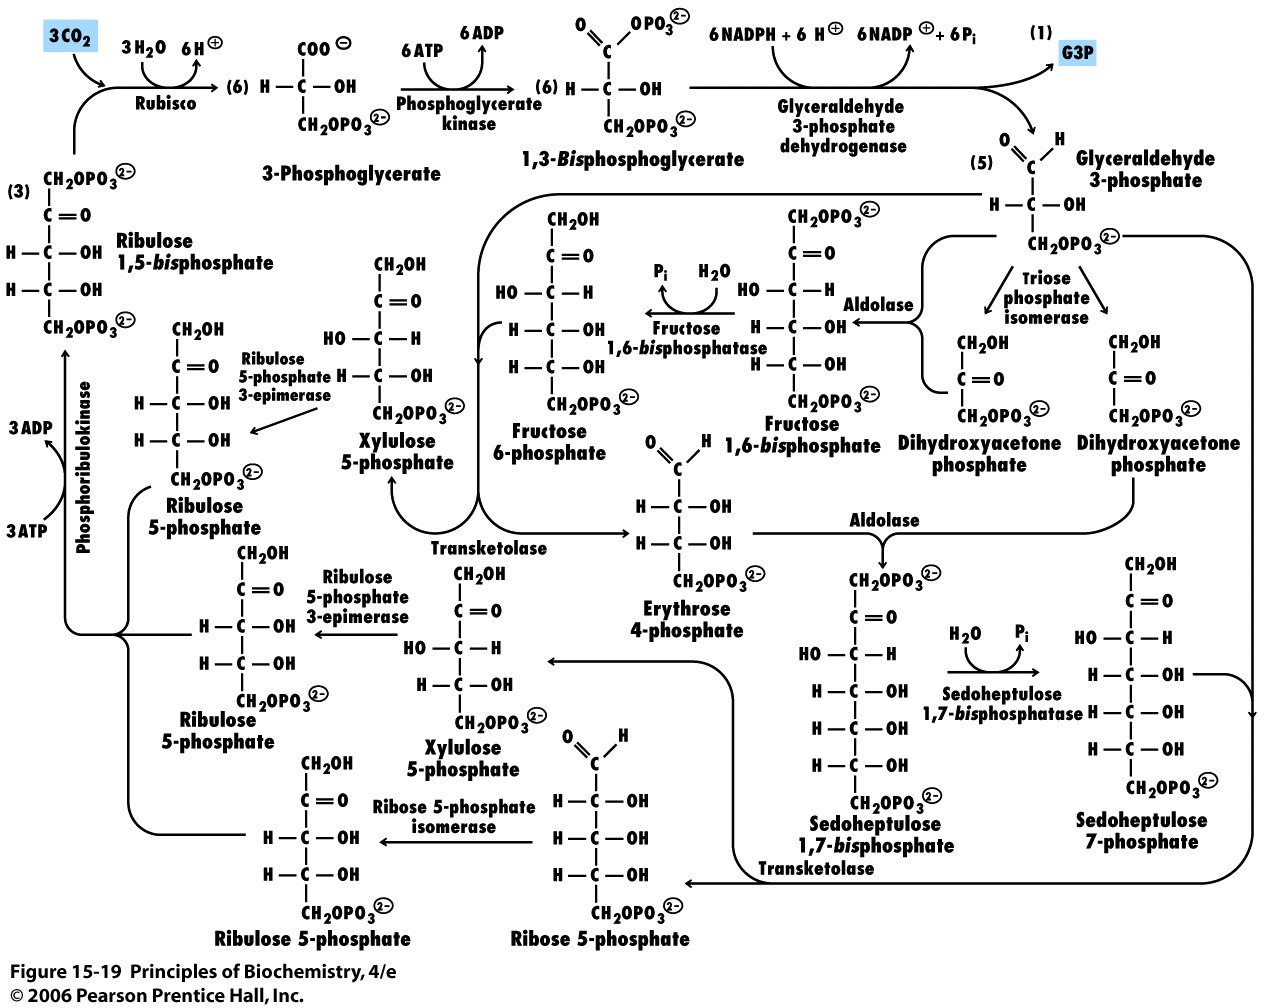 the calvin cycle The calvin cycle is a metabolic process that occurs in the chloroplasts of plant cells its main function is to create sugar from carbon dioxide for the plant to use as a source of energy plants obtain all of their energy from the sun each plant cell has a small organelle known as a chloroplast.